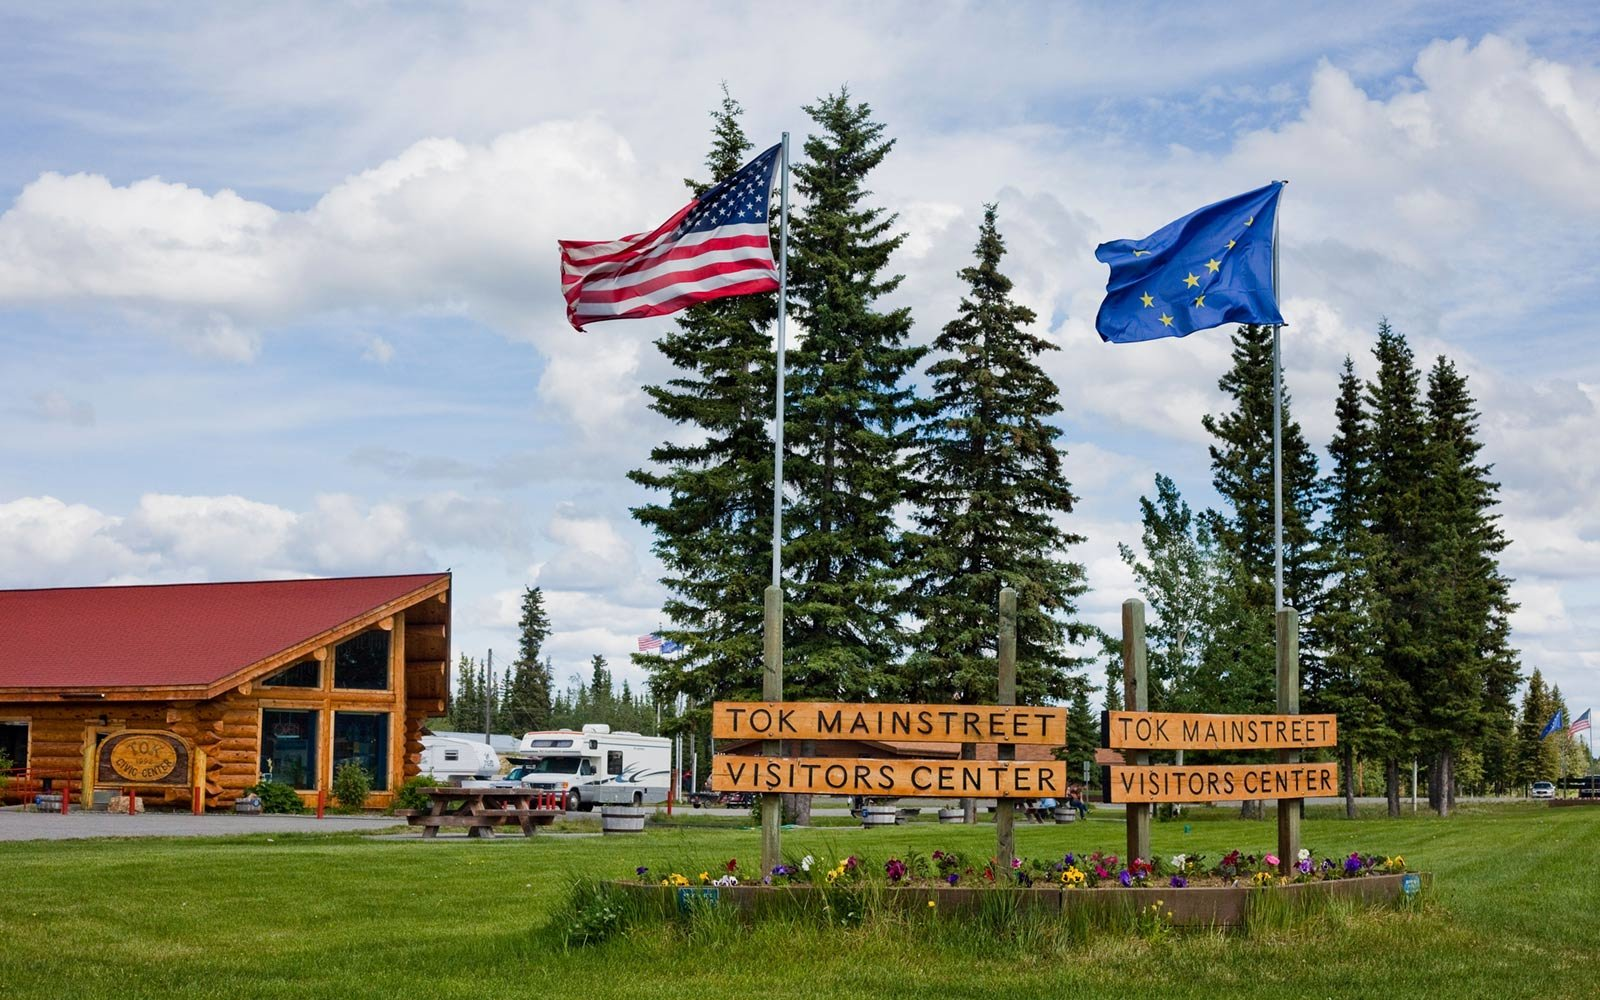 Mainstreet Visitors Center, Tok, Alaska